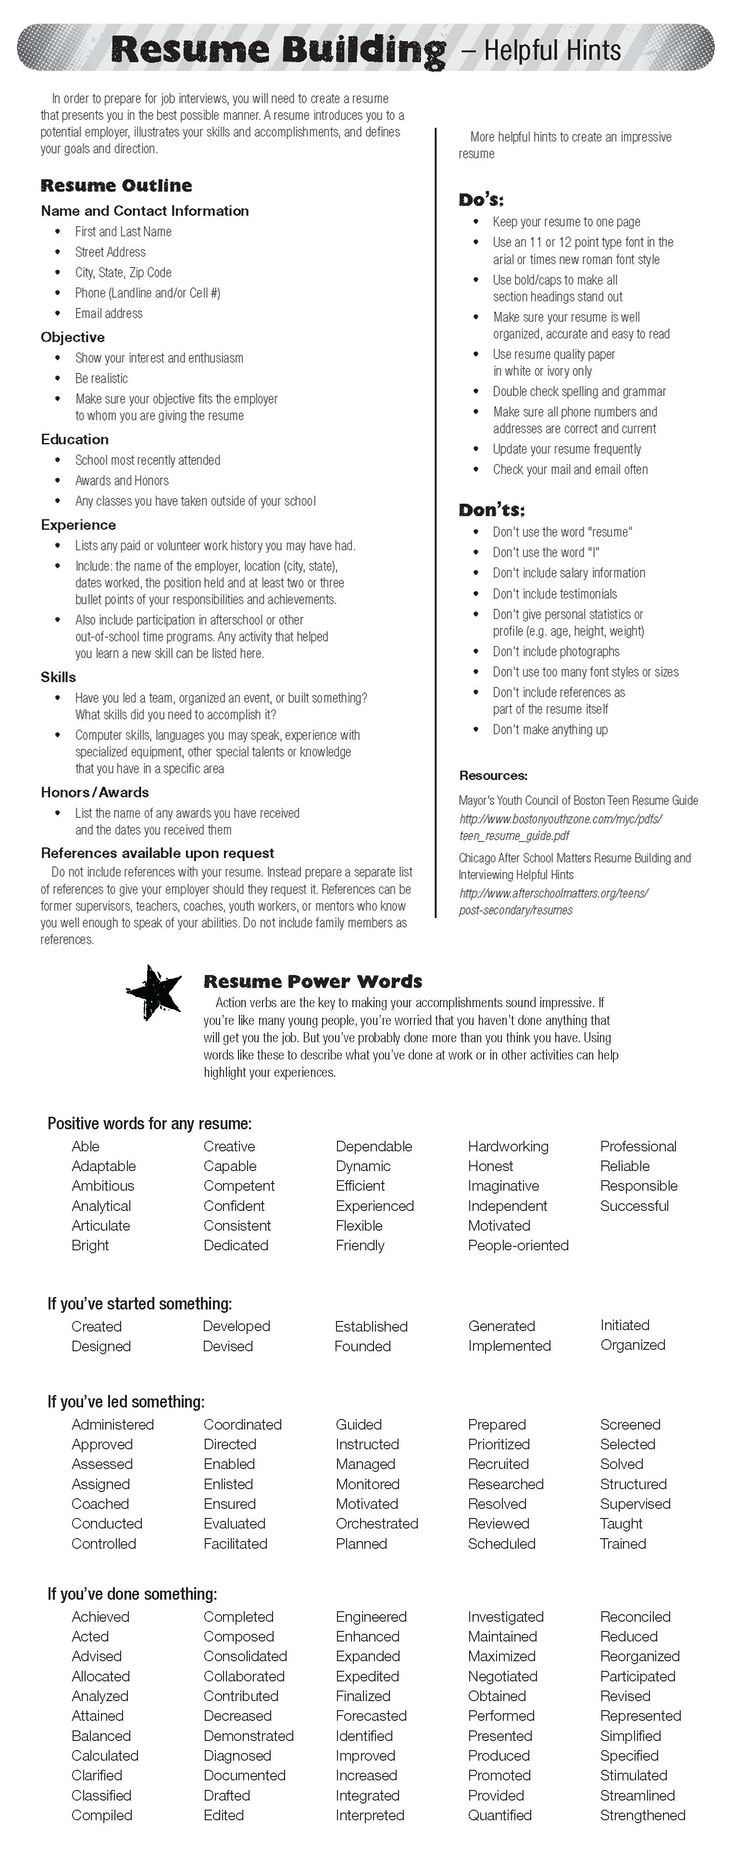 Opposenewapstandardsus  Ravishing  Ideas About Resume On Pinterest  Cv Format Resume Cv And  With Goodlooking  Ideas About Resume On Pinterest  Cv Format Resume Cv And Resume Templates With Beautiful Application Developer Resume Also Flight Instructor Resume In Addition Sales Resume Cover Letter And Federal Resume Guide As Well As Free Resume Services Additionally Dialysis Nurse Resume From Pinterestcom With Opposenewapstandardsus  Goodlooking  Ideas About Resume On Pinterest  Cv Format Resume Cv And  With Beautiful  Ideas About Resume On Pinterest  Cv Format Resume Cv And Resume Templates And Ravishing Application Developer Resume Also Flight Instructor Resume In Addition Sales Resume Cover Letter From Pinterestcom